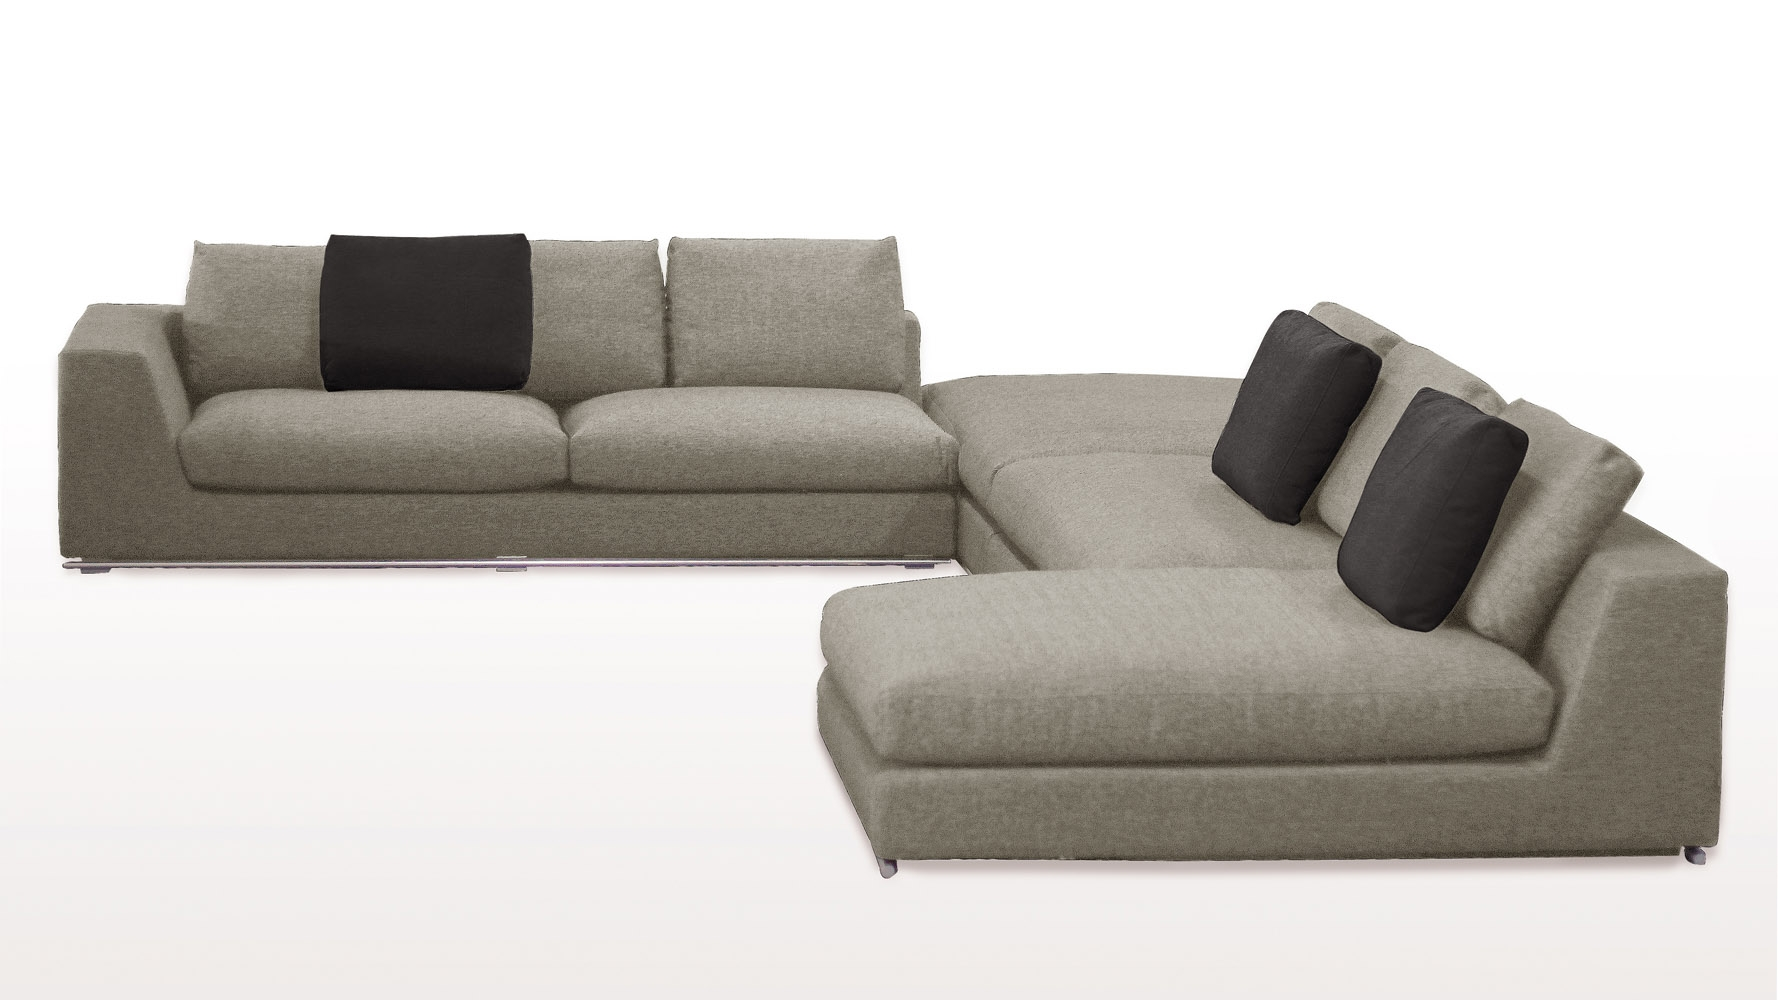 Comodo Sectional Sofa With Ottoman Grey Zuri Furniture For Armless Sectional Sofas (Image 12 of 15)